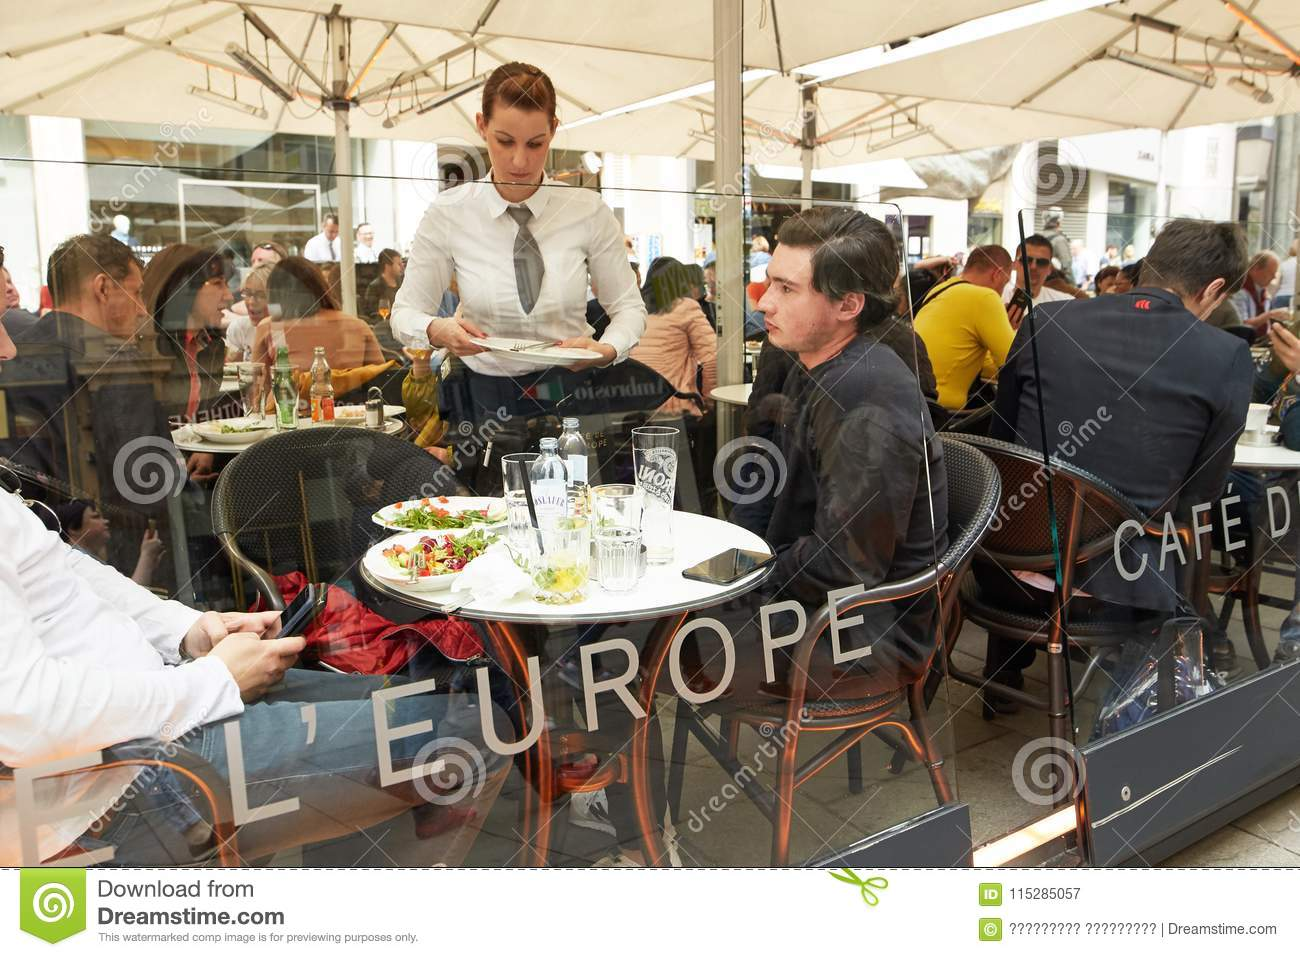 Vienna, Austria - 15 April 2018: A street cafe. Waiter and visitors at tables.